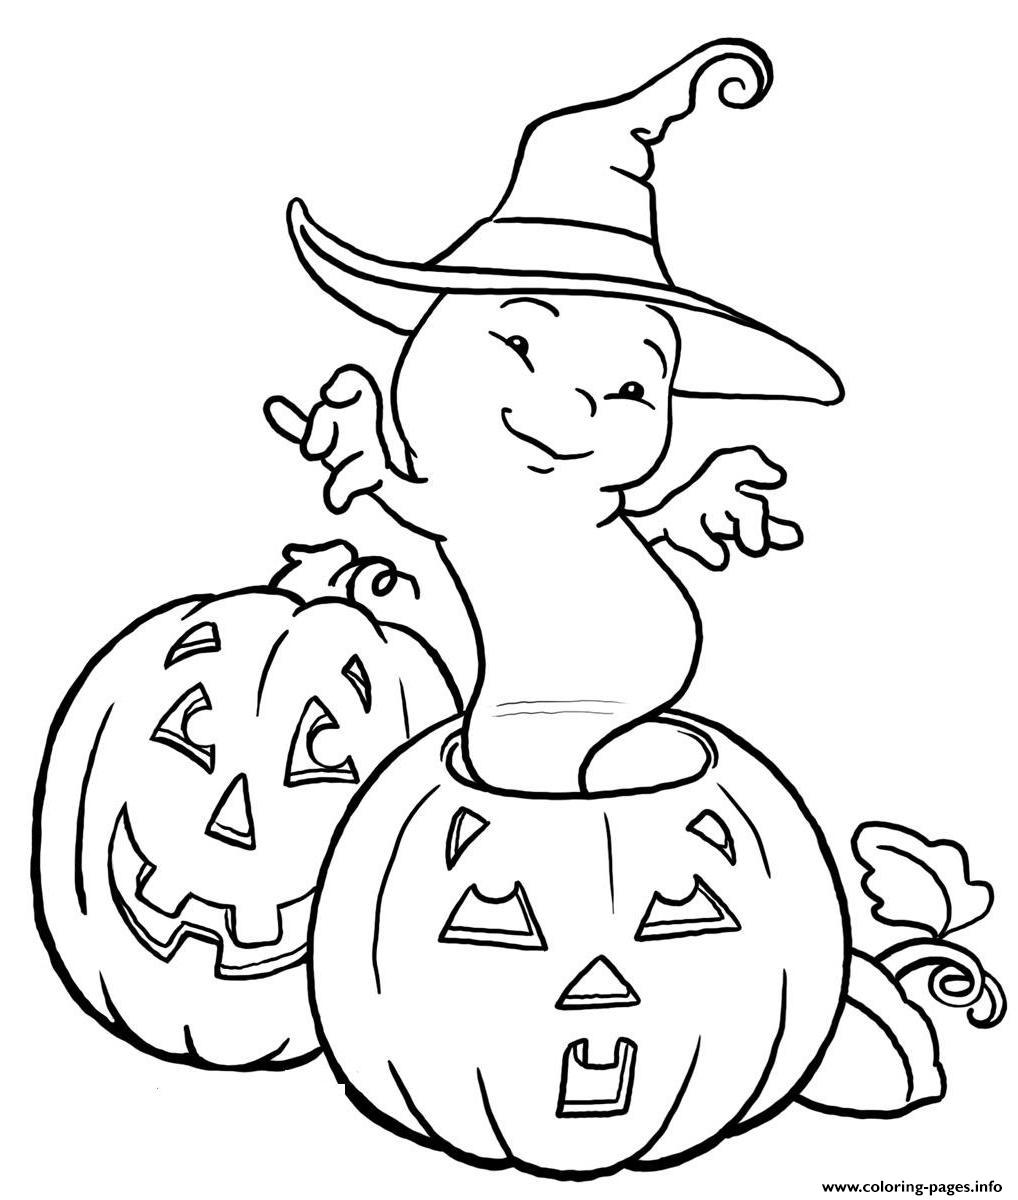 1018x1200 Halloween Ghost And Pumpkin S Kidseade Coloring Pages Printable